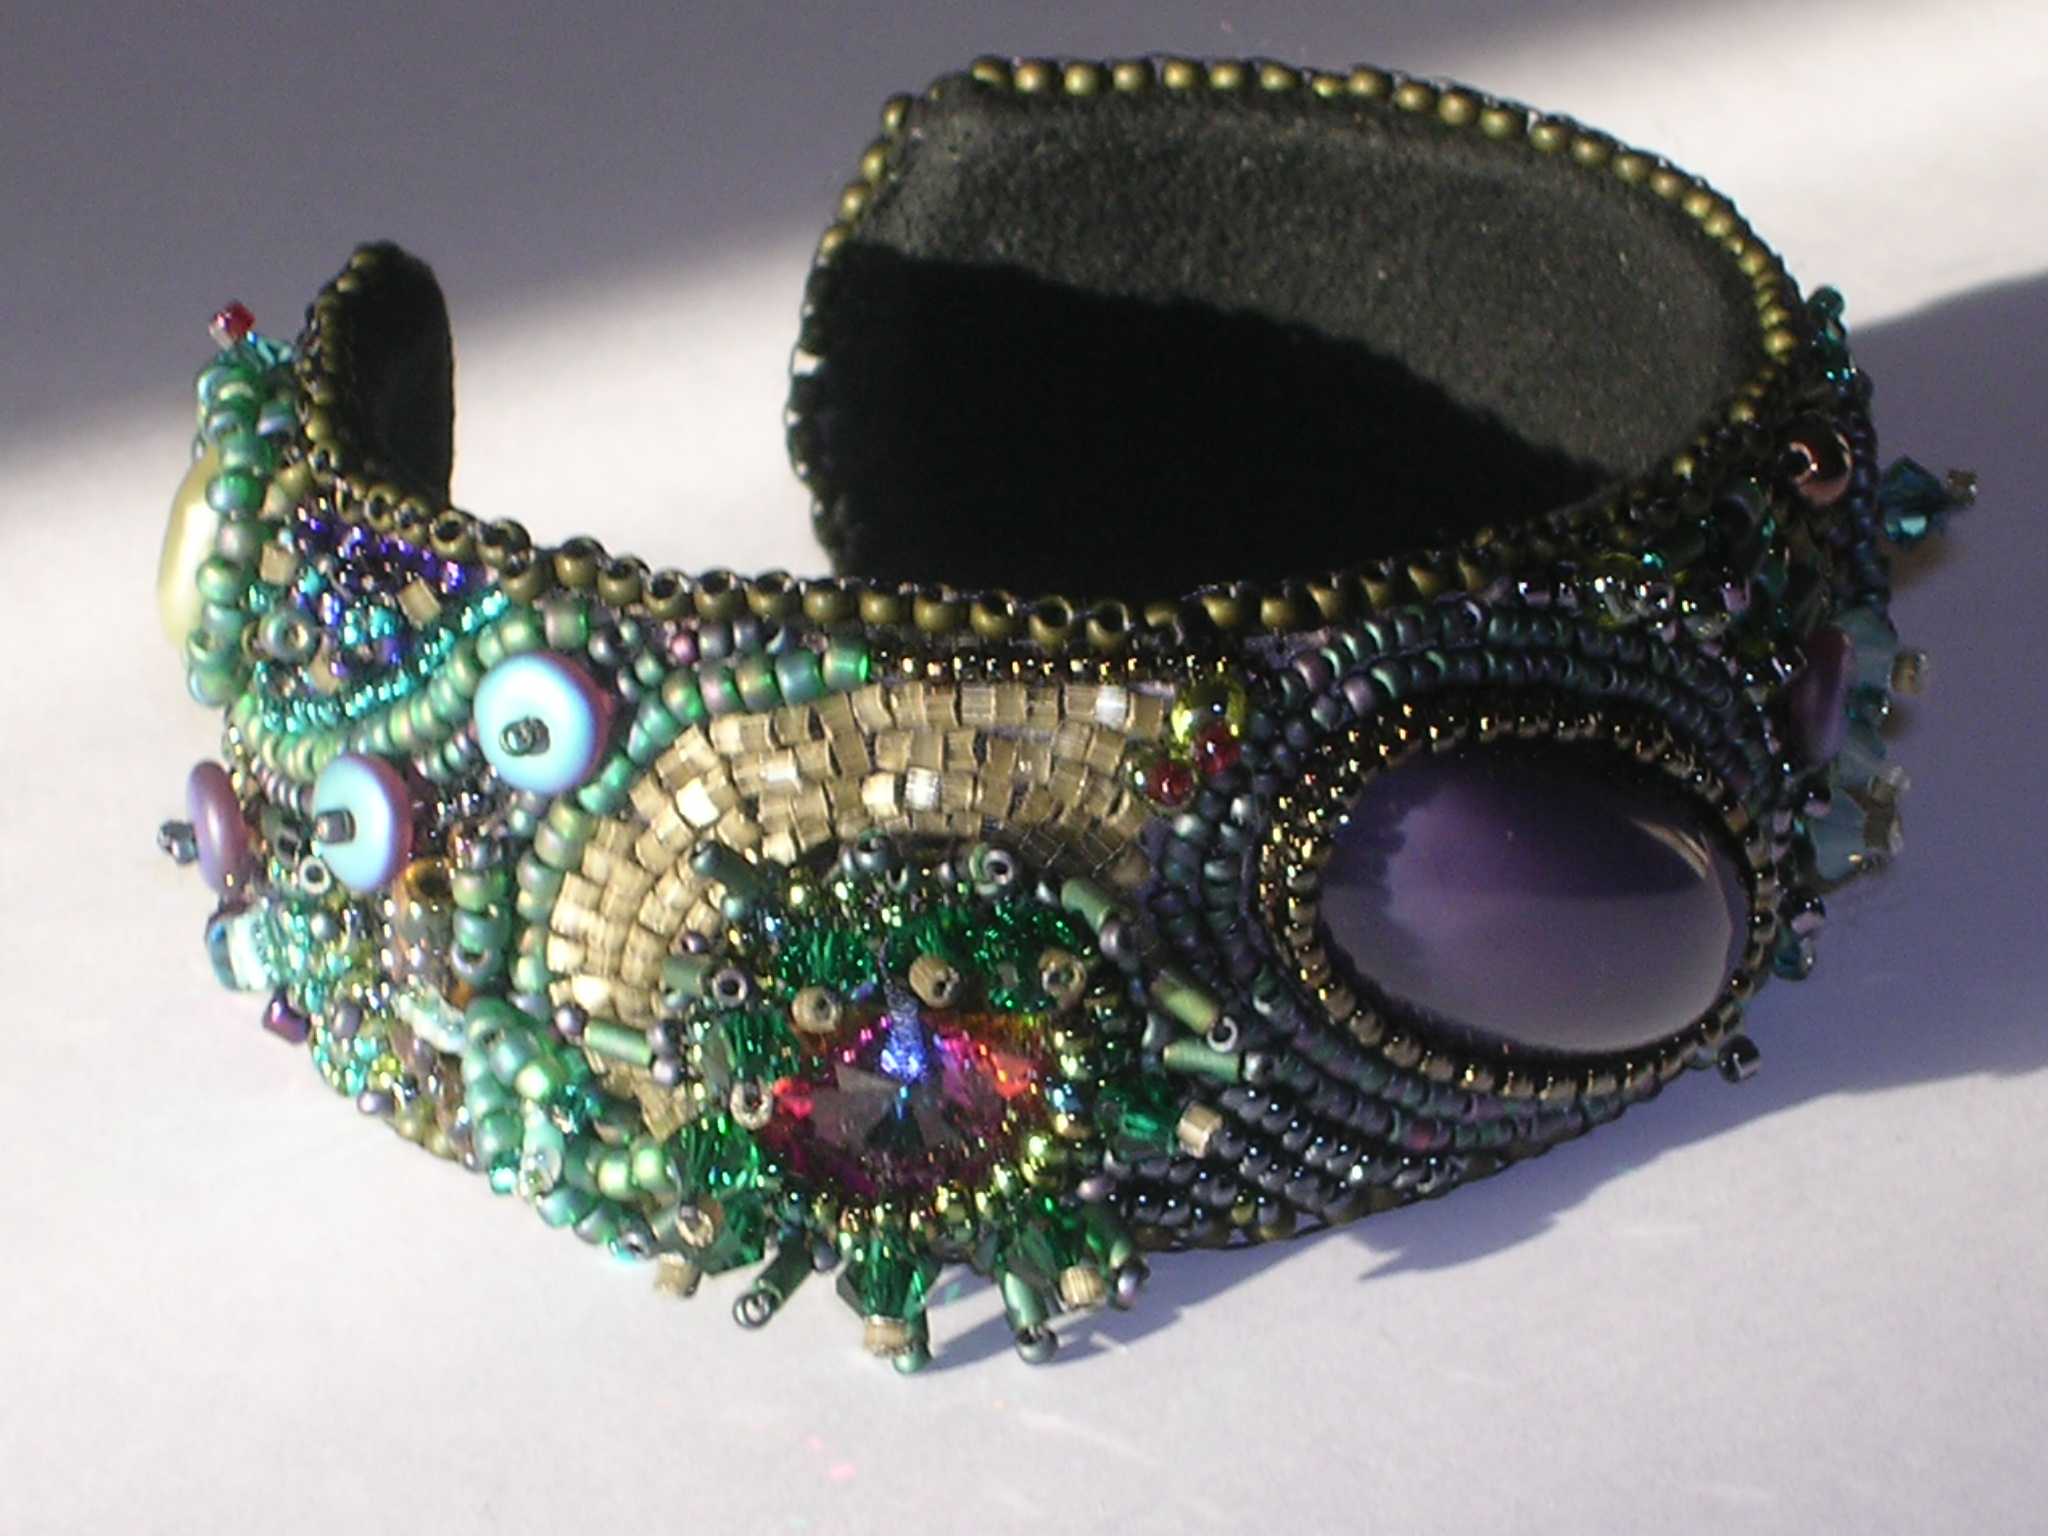 I was heavily invested in beadwork. (read hundreds of dollars of beads)  making cuffs by using beading.